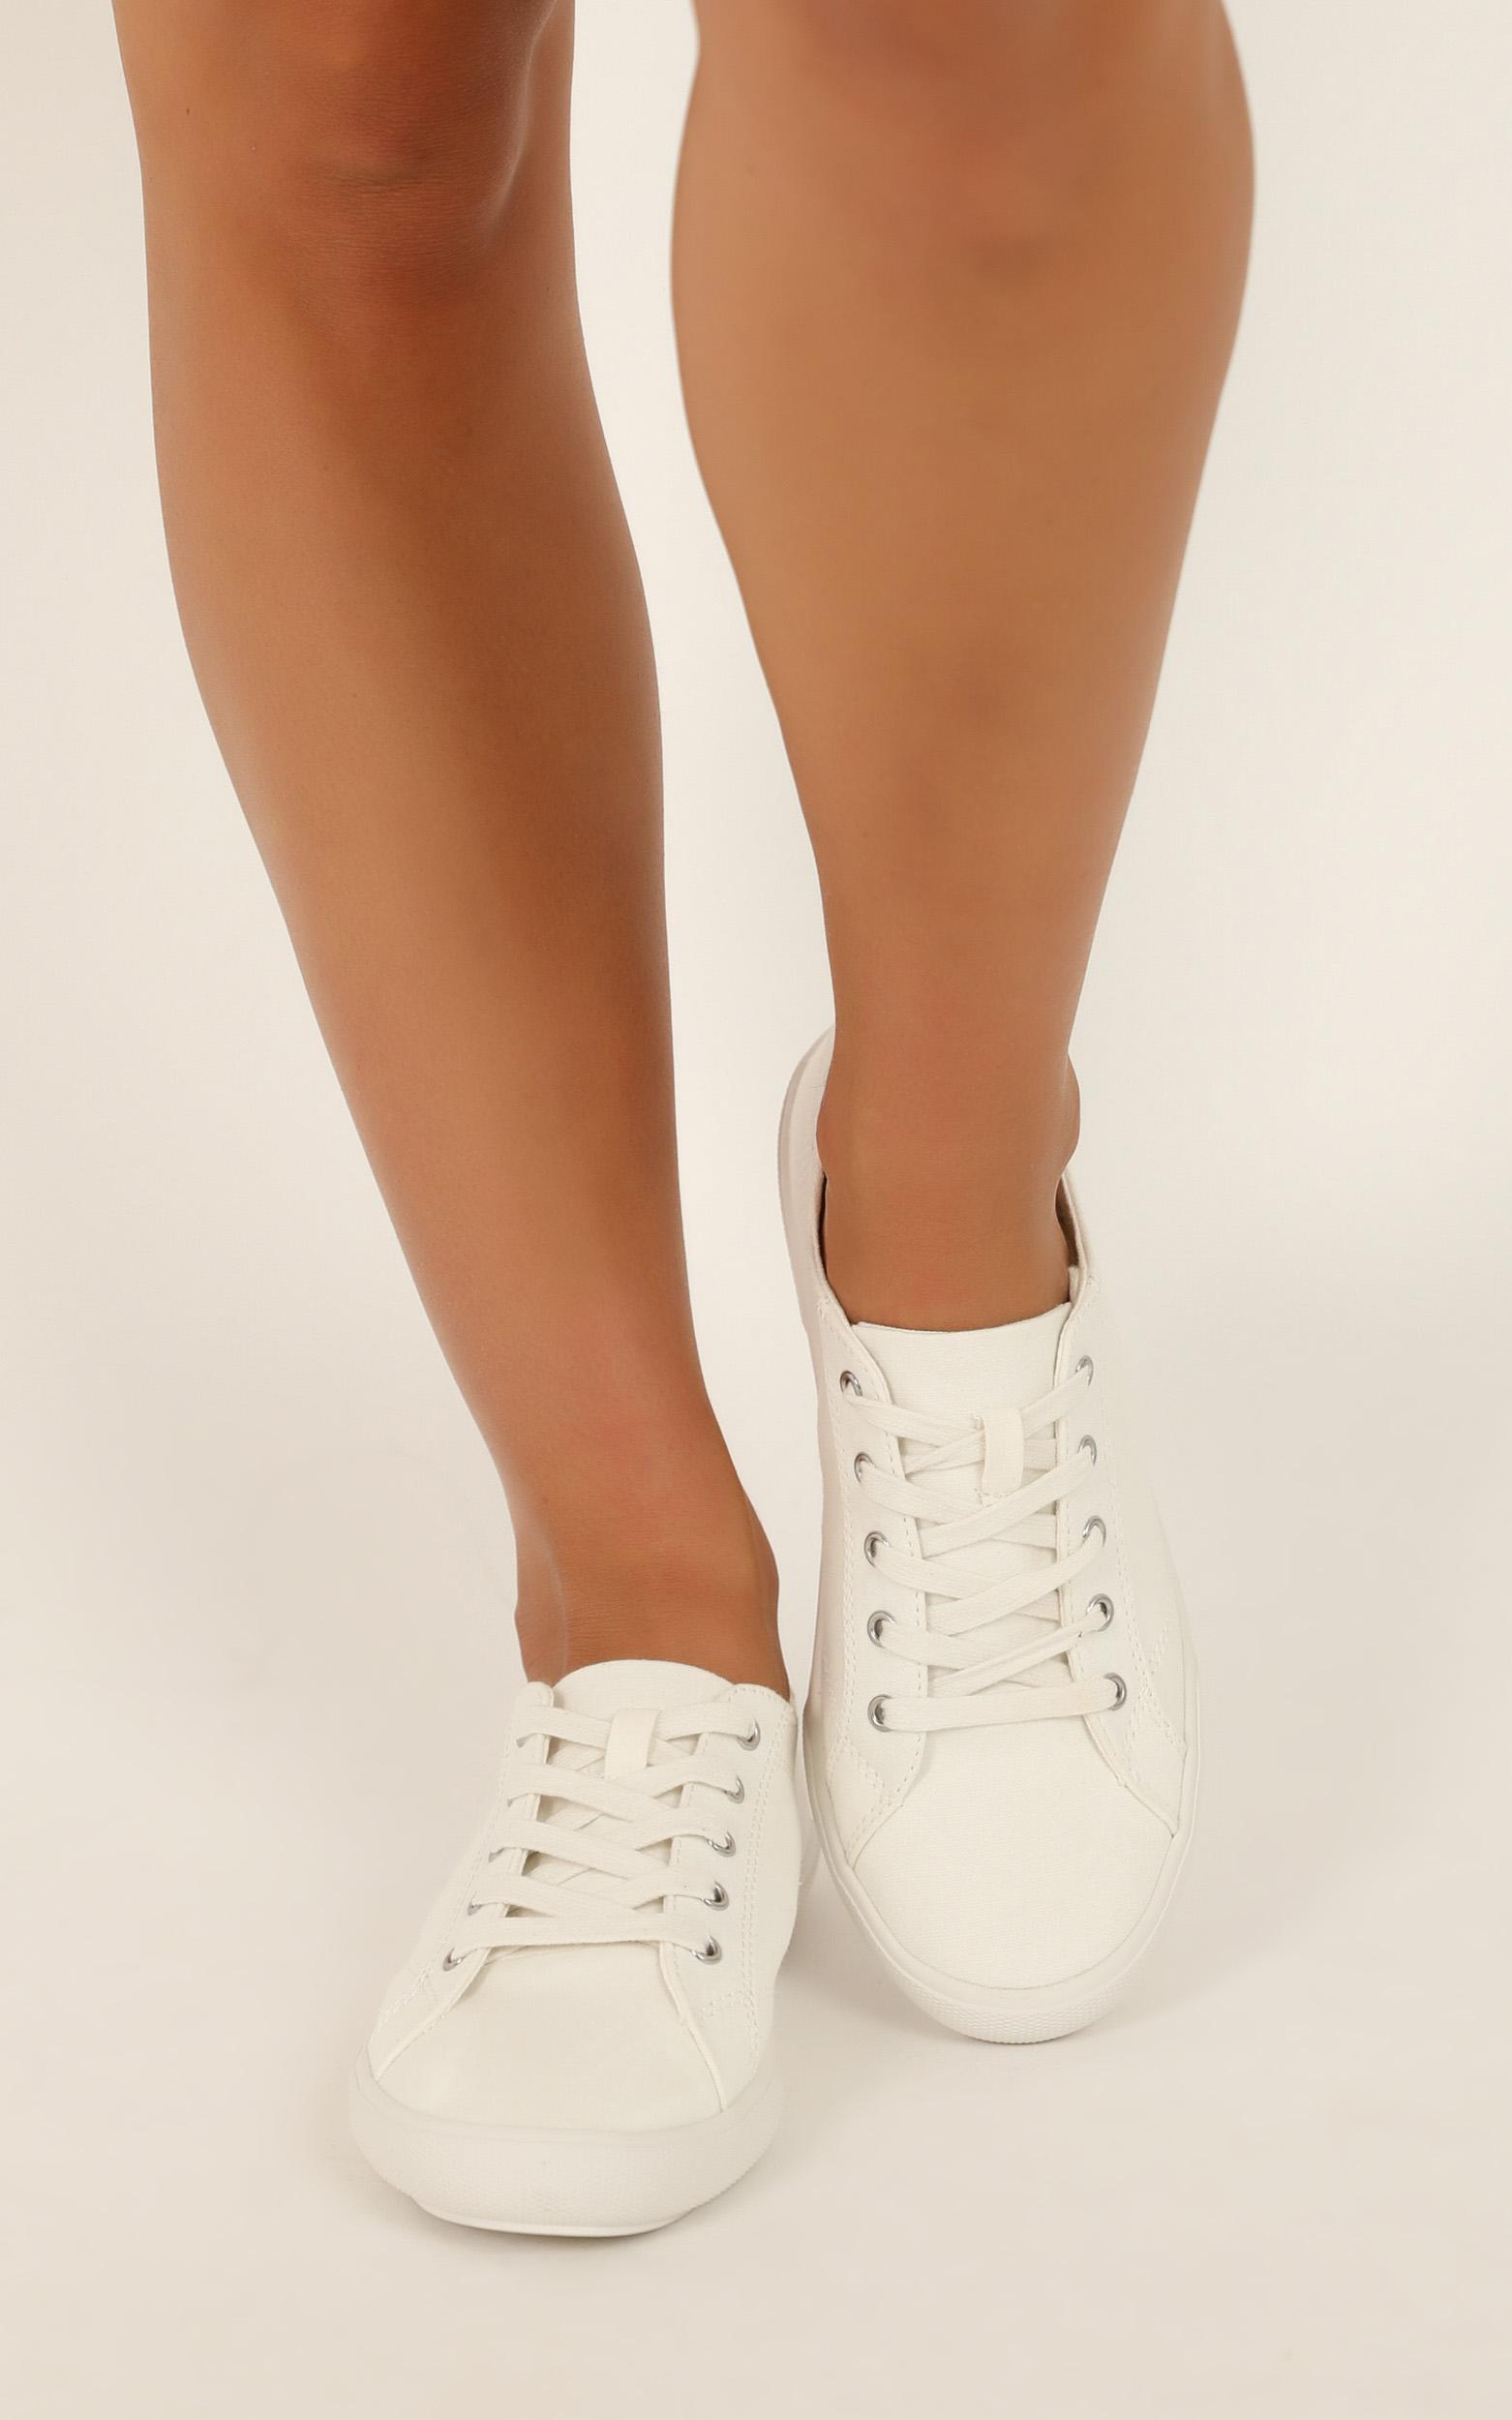 Verali - Retro Sneakers in white canvas - 10, White, hi-res image number null